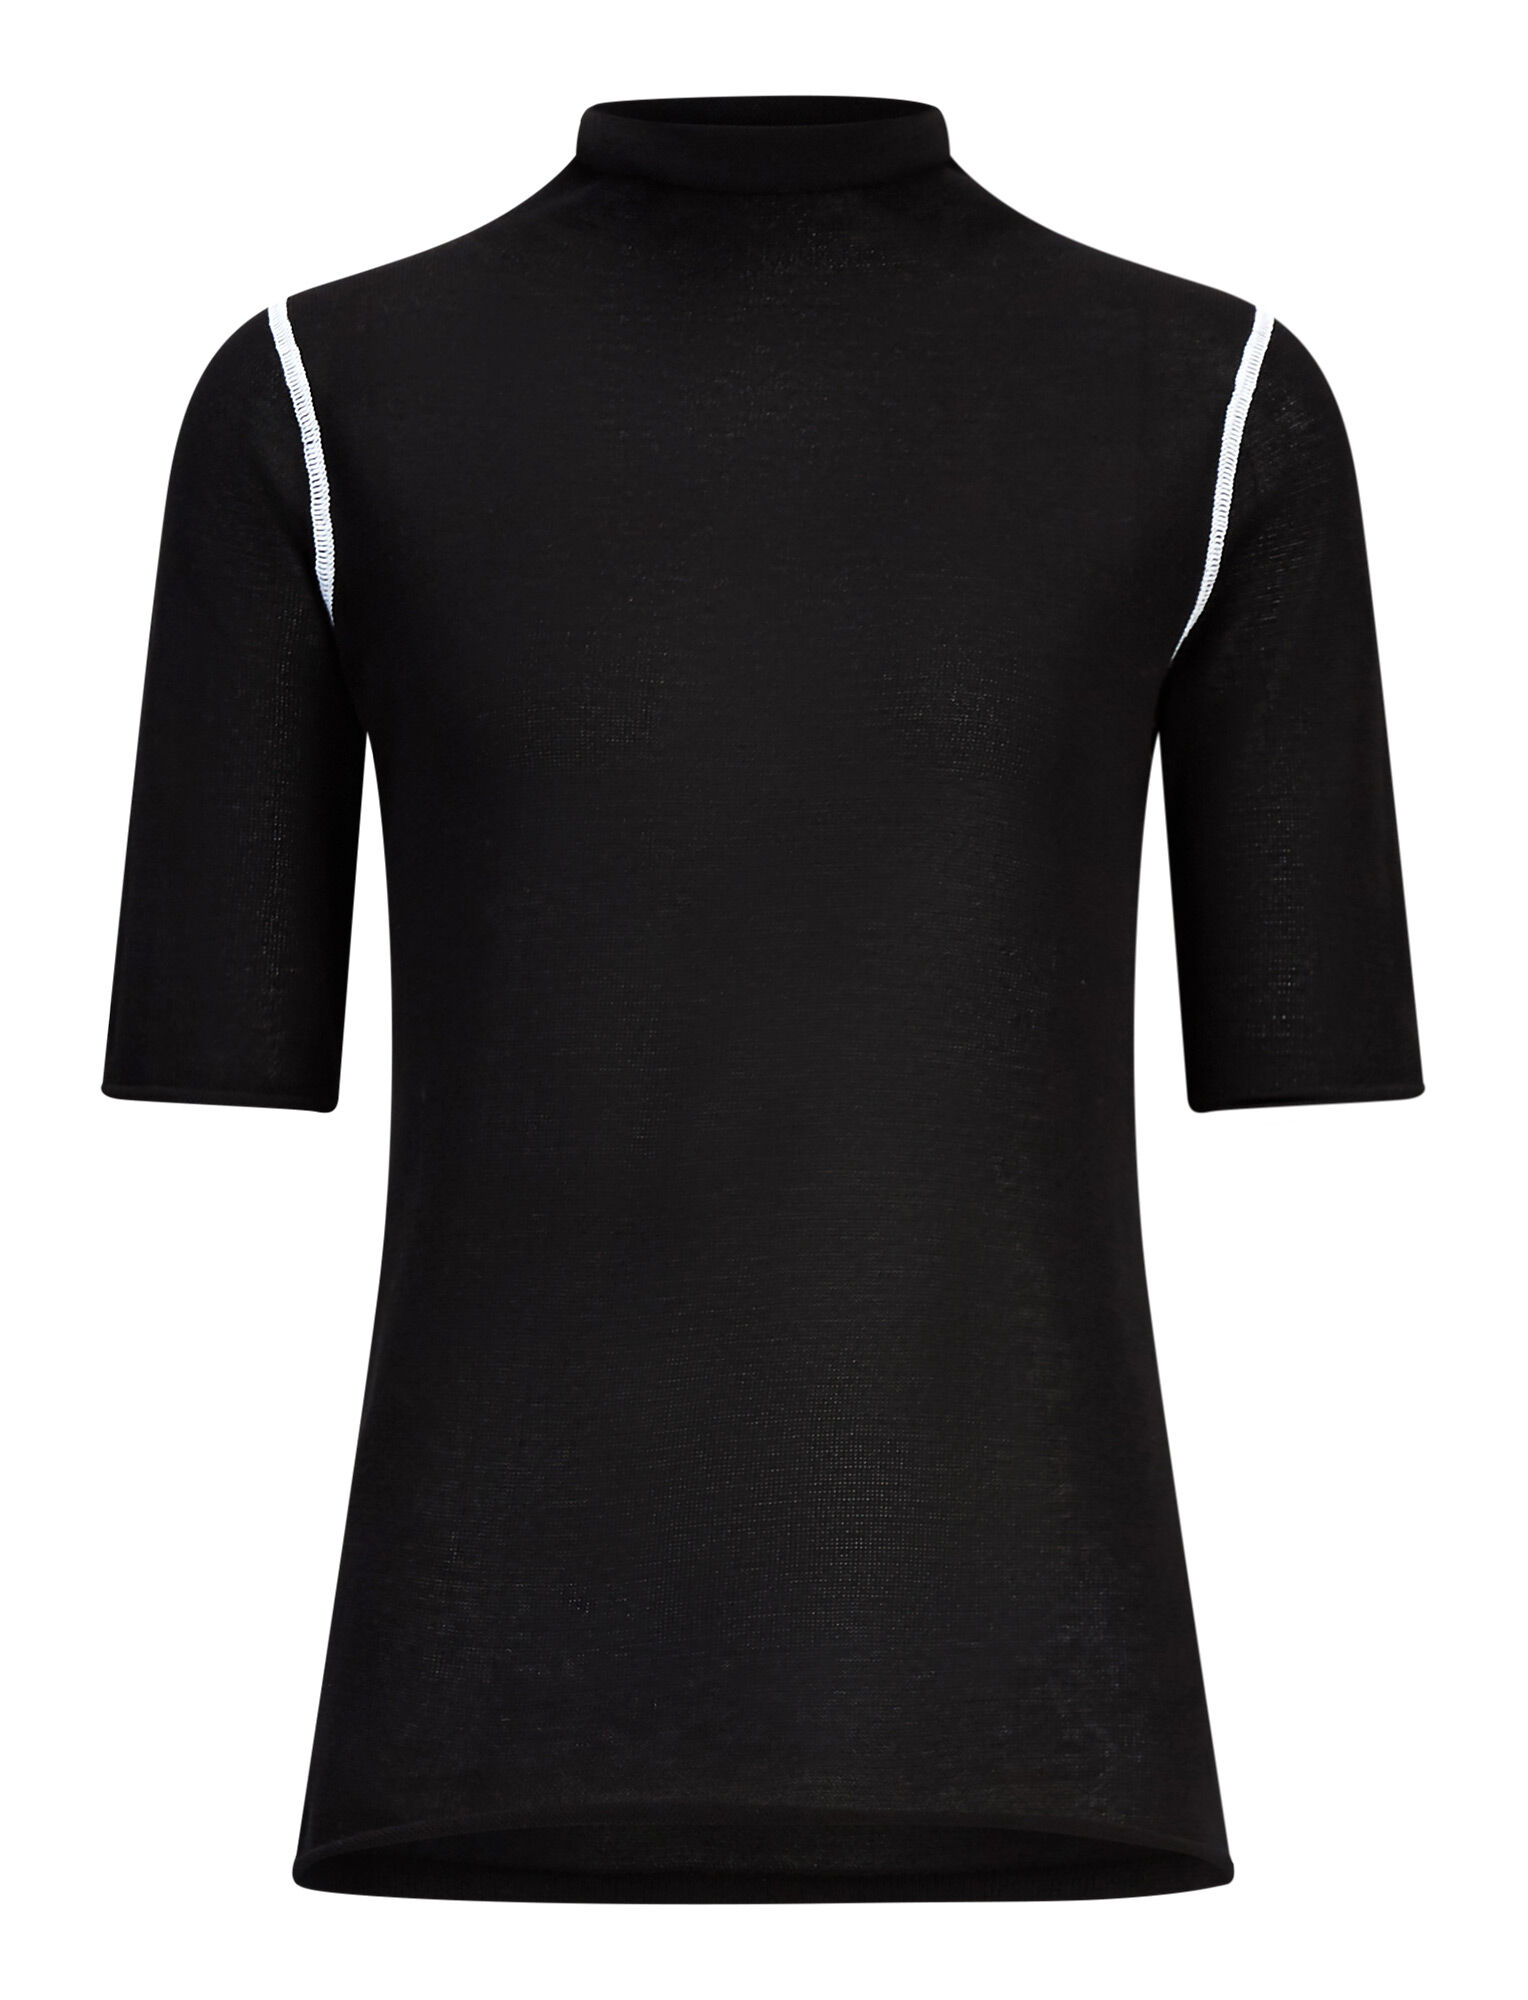 Joseph, High Neck Light Cotton Knit Tee, in BLACK